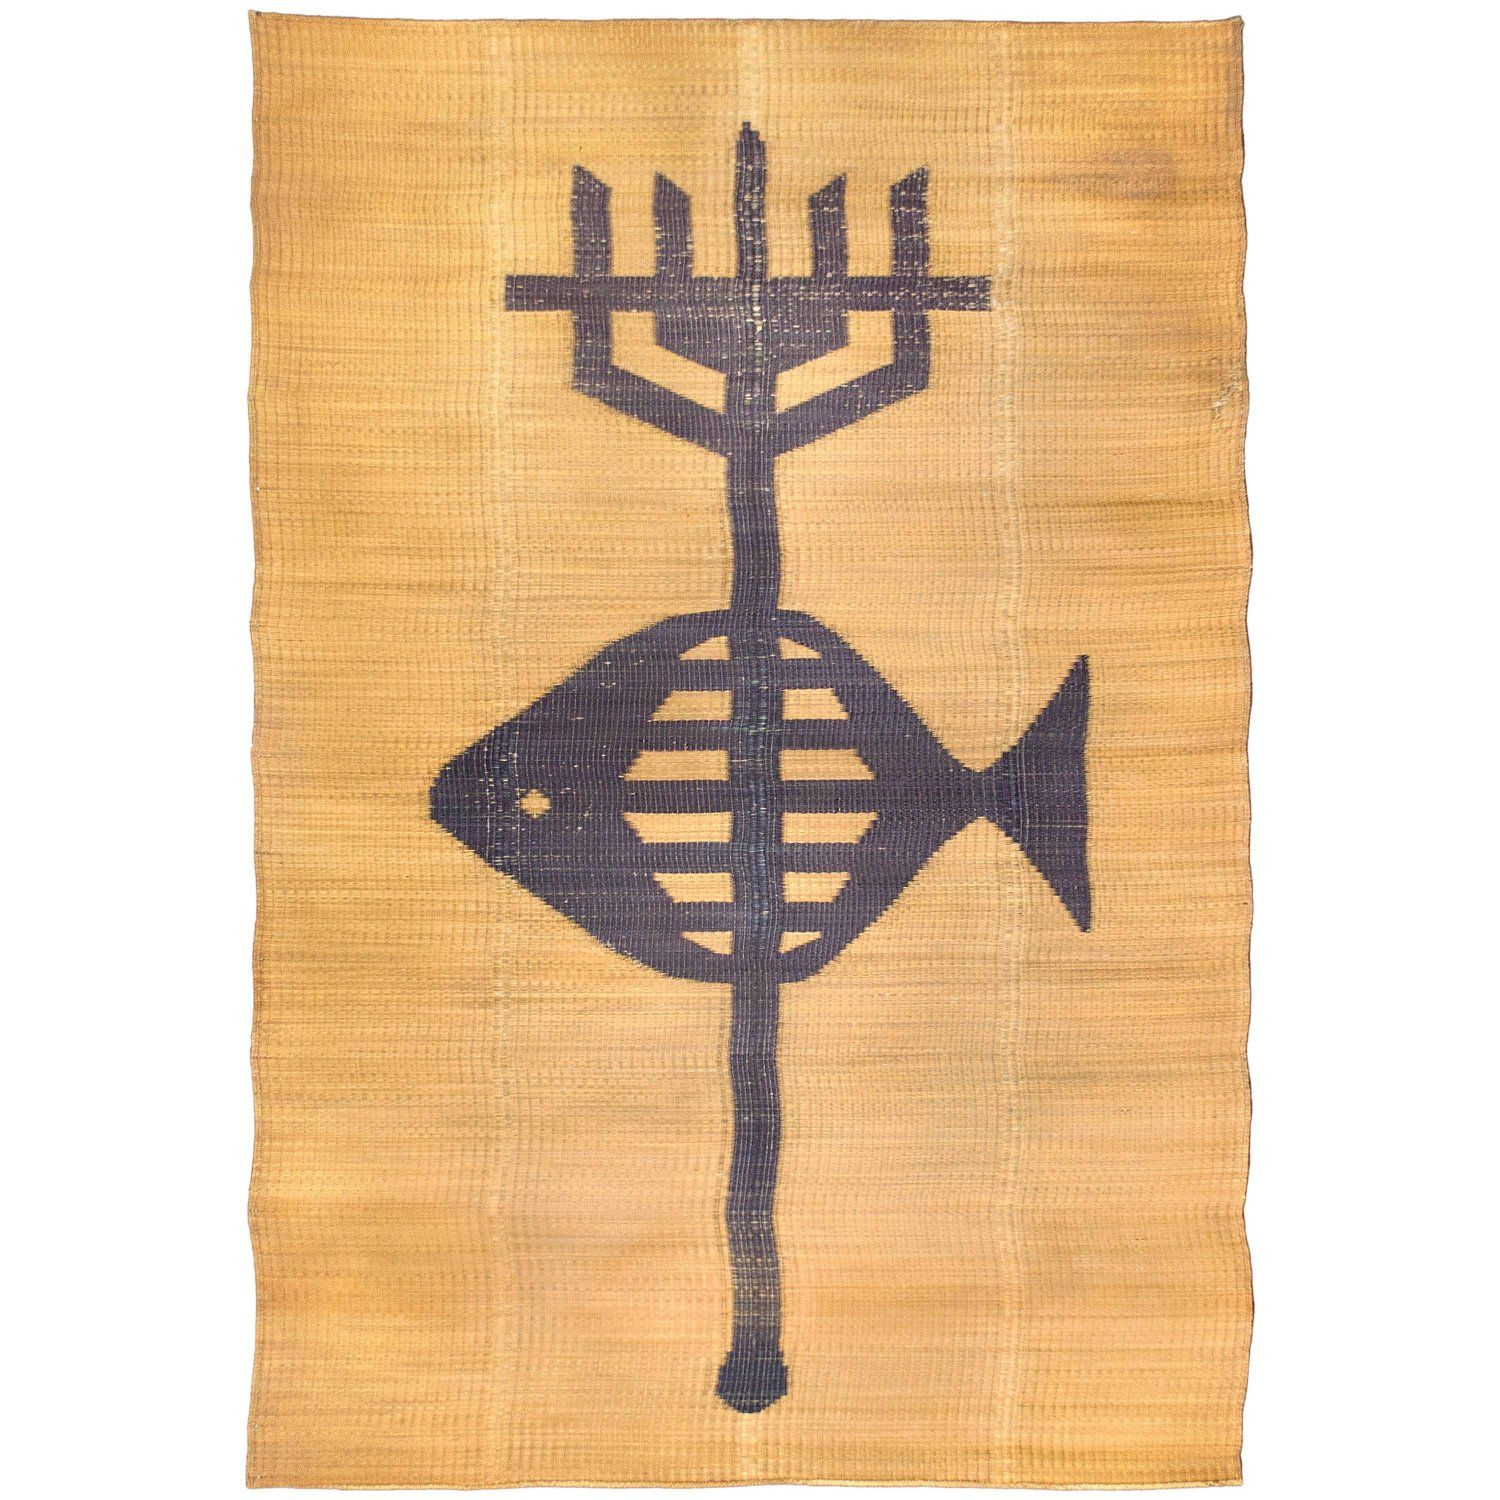 Large Straw Rug with Poseidon Trident Motif, circa 1950, France ...